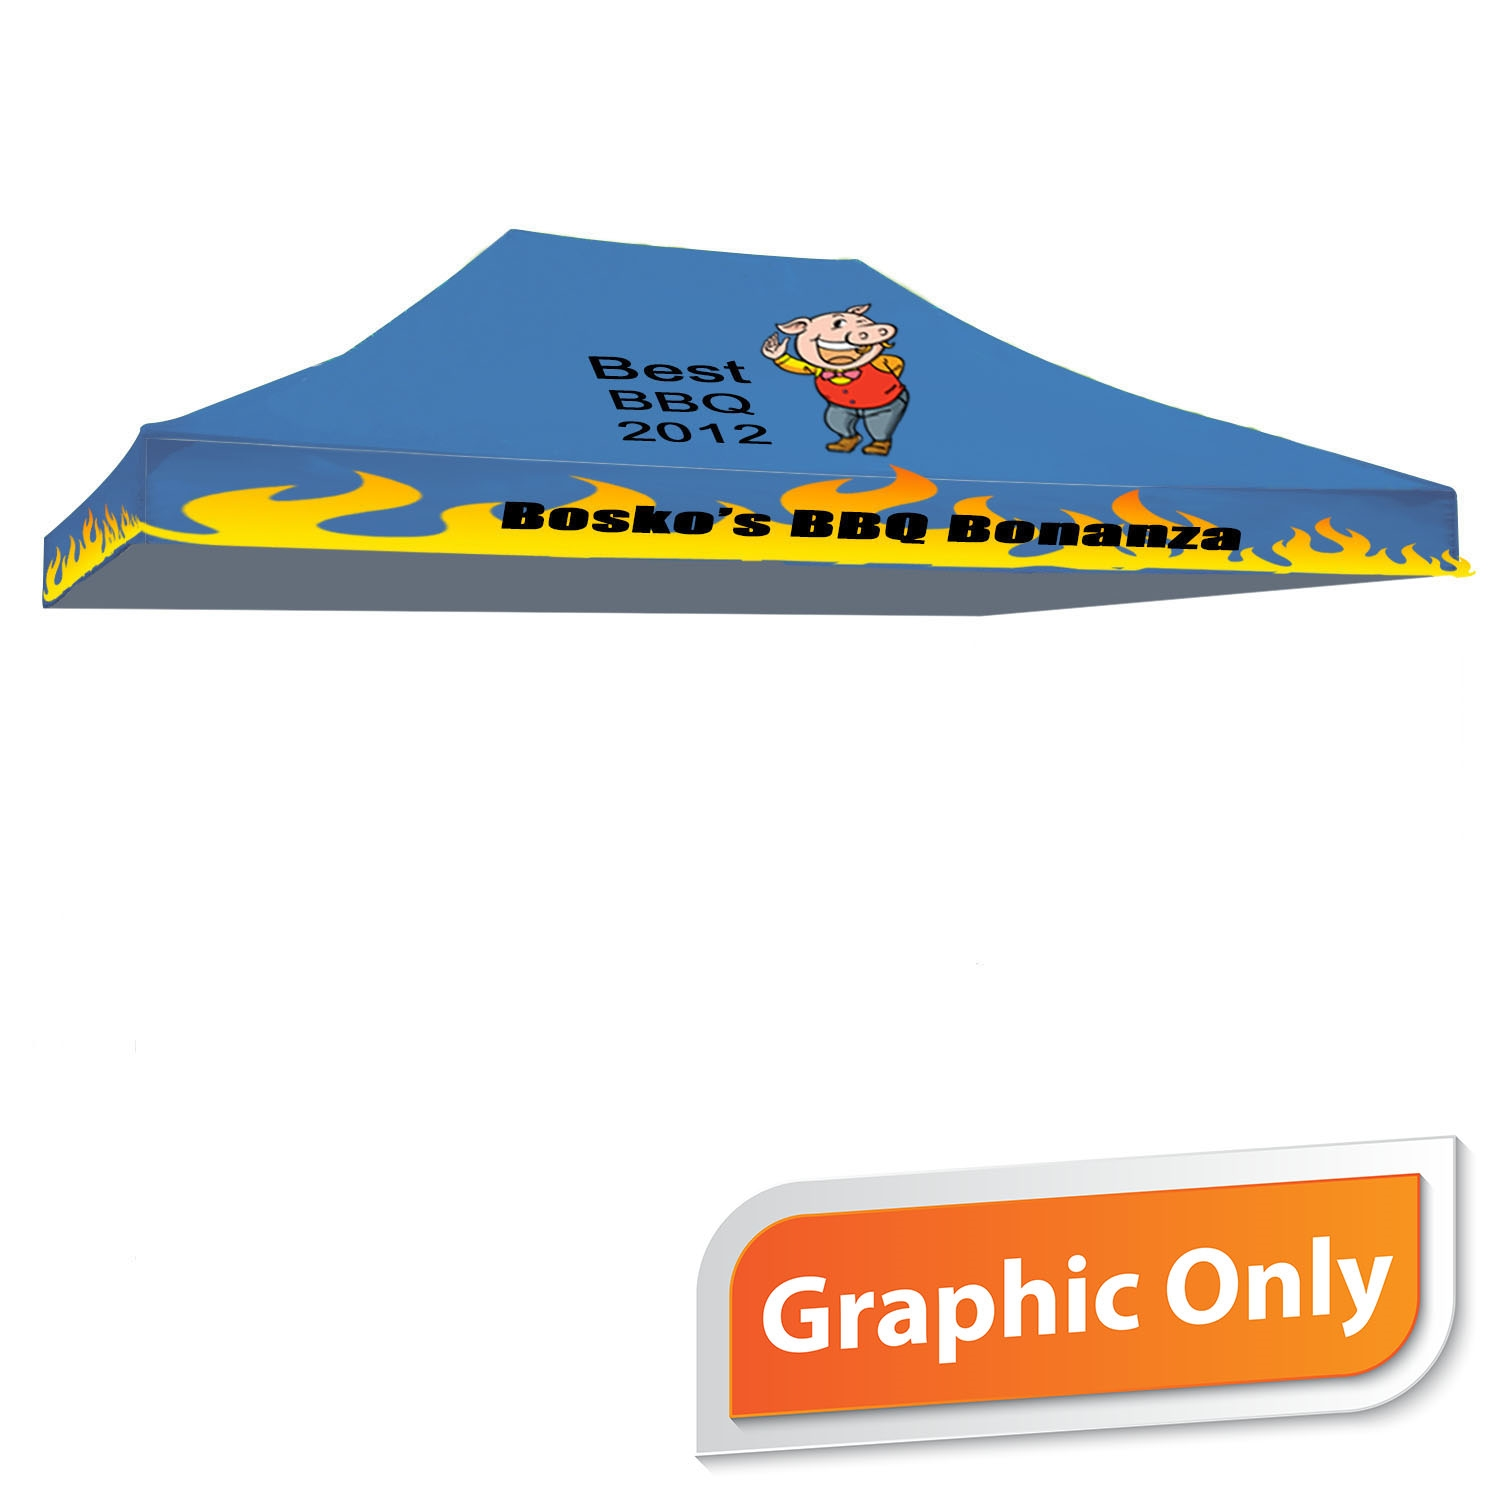 15' x 10' Tent Canopy - Full Color Graphic Only